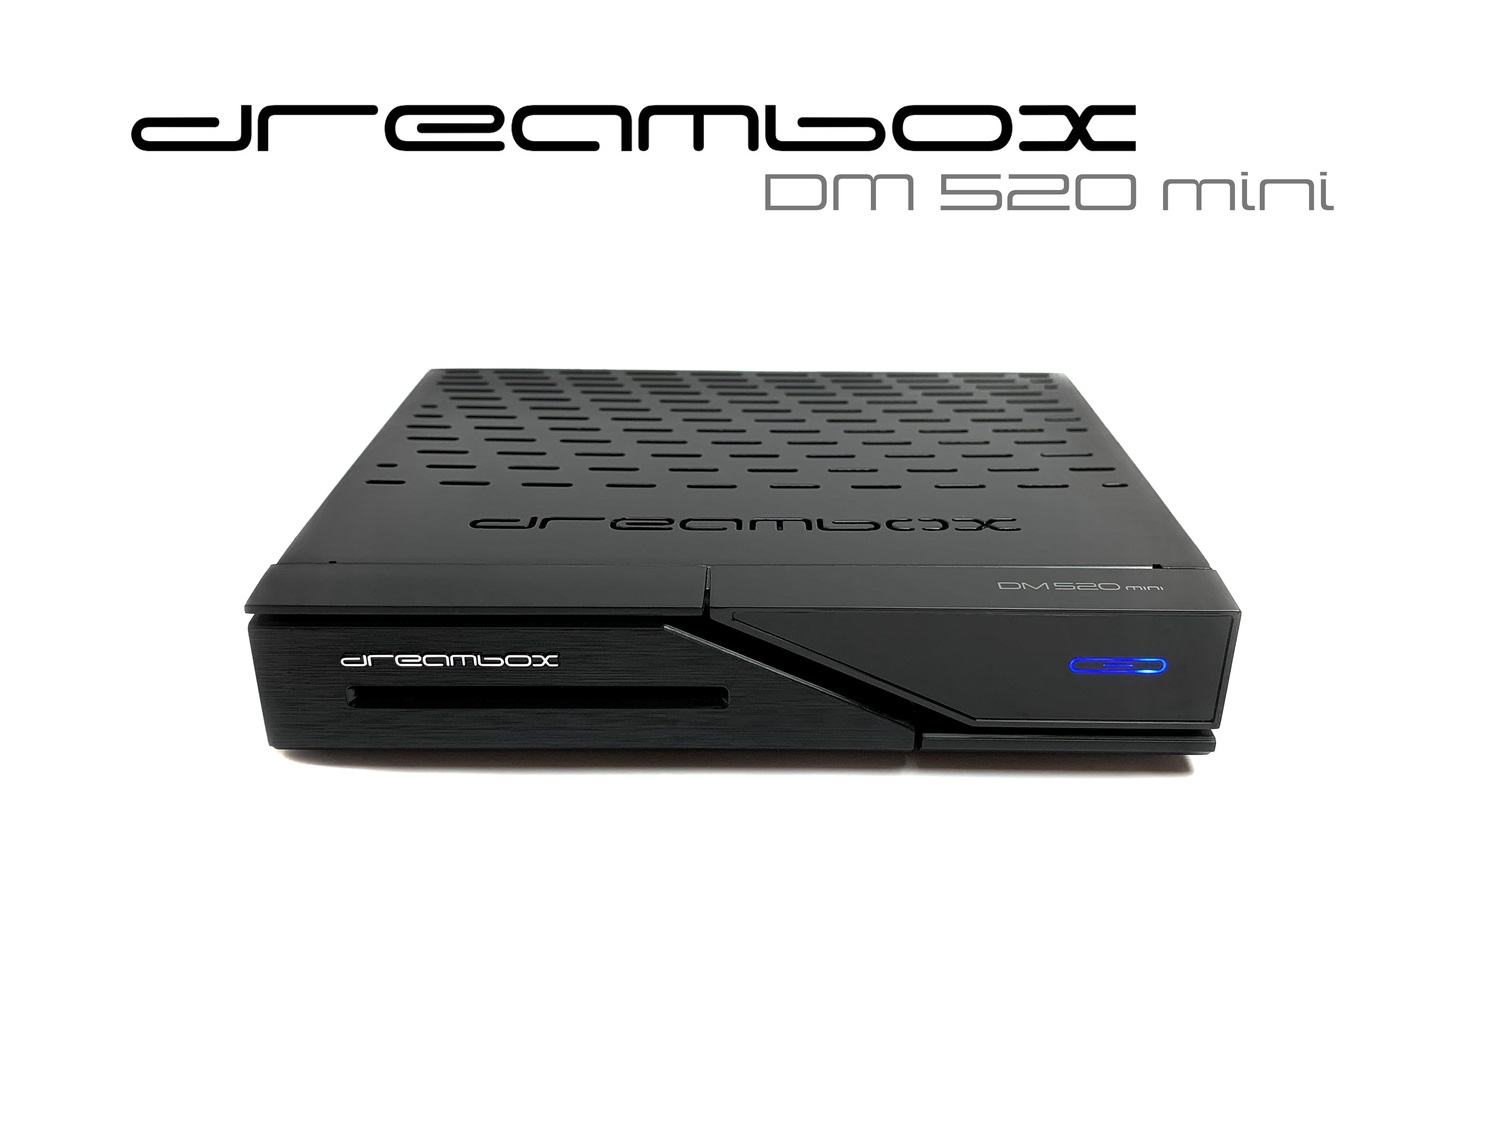 Dreambox DM520 mini HD 1x DVB-S2